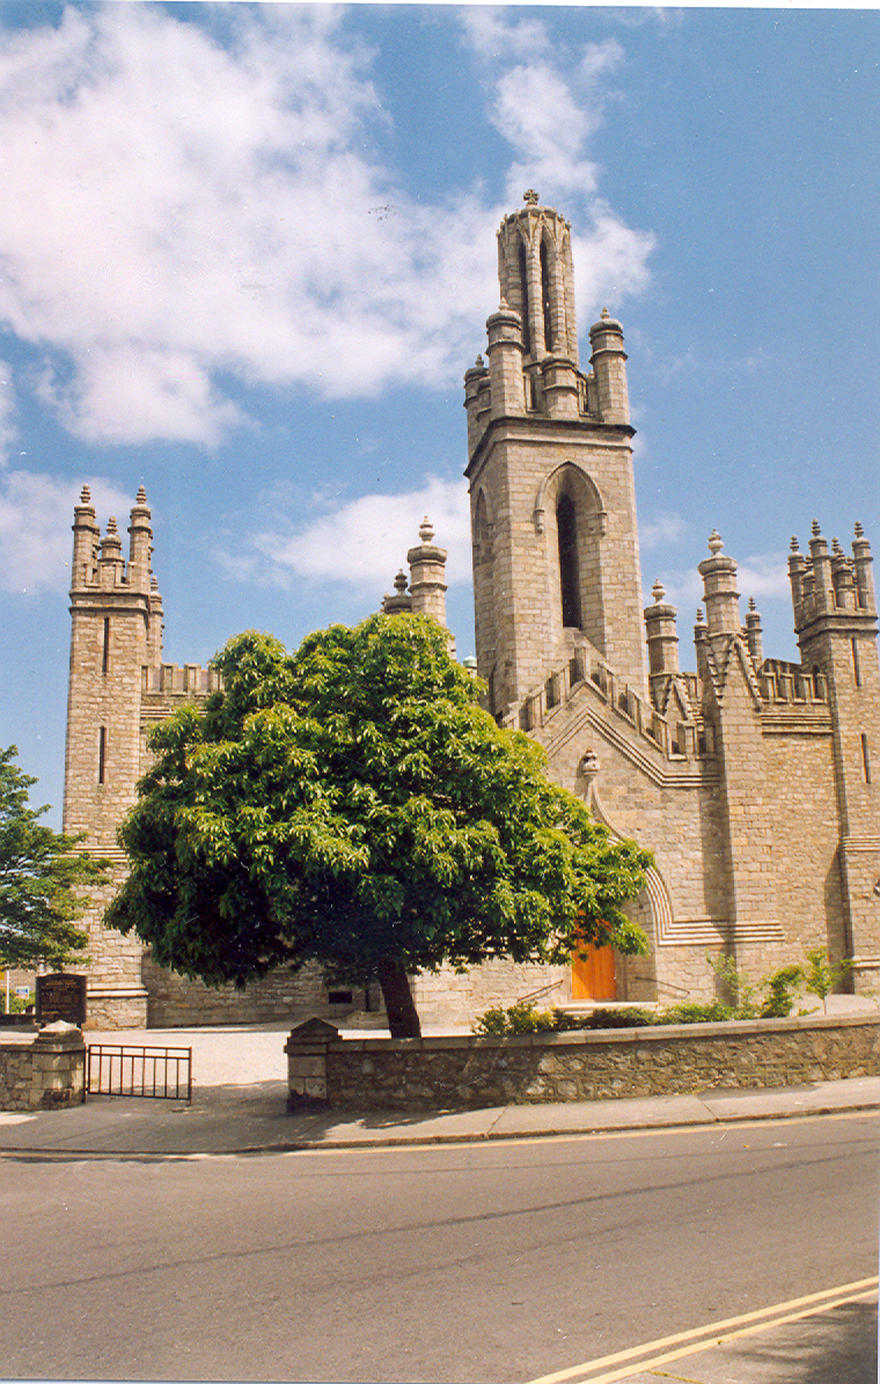 Monkstown Parish Church in the parish of Monkstown